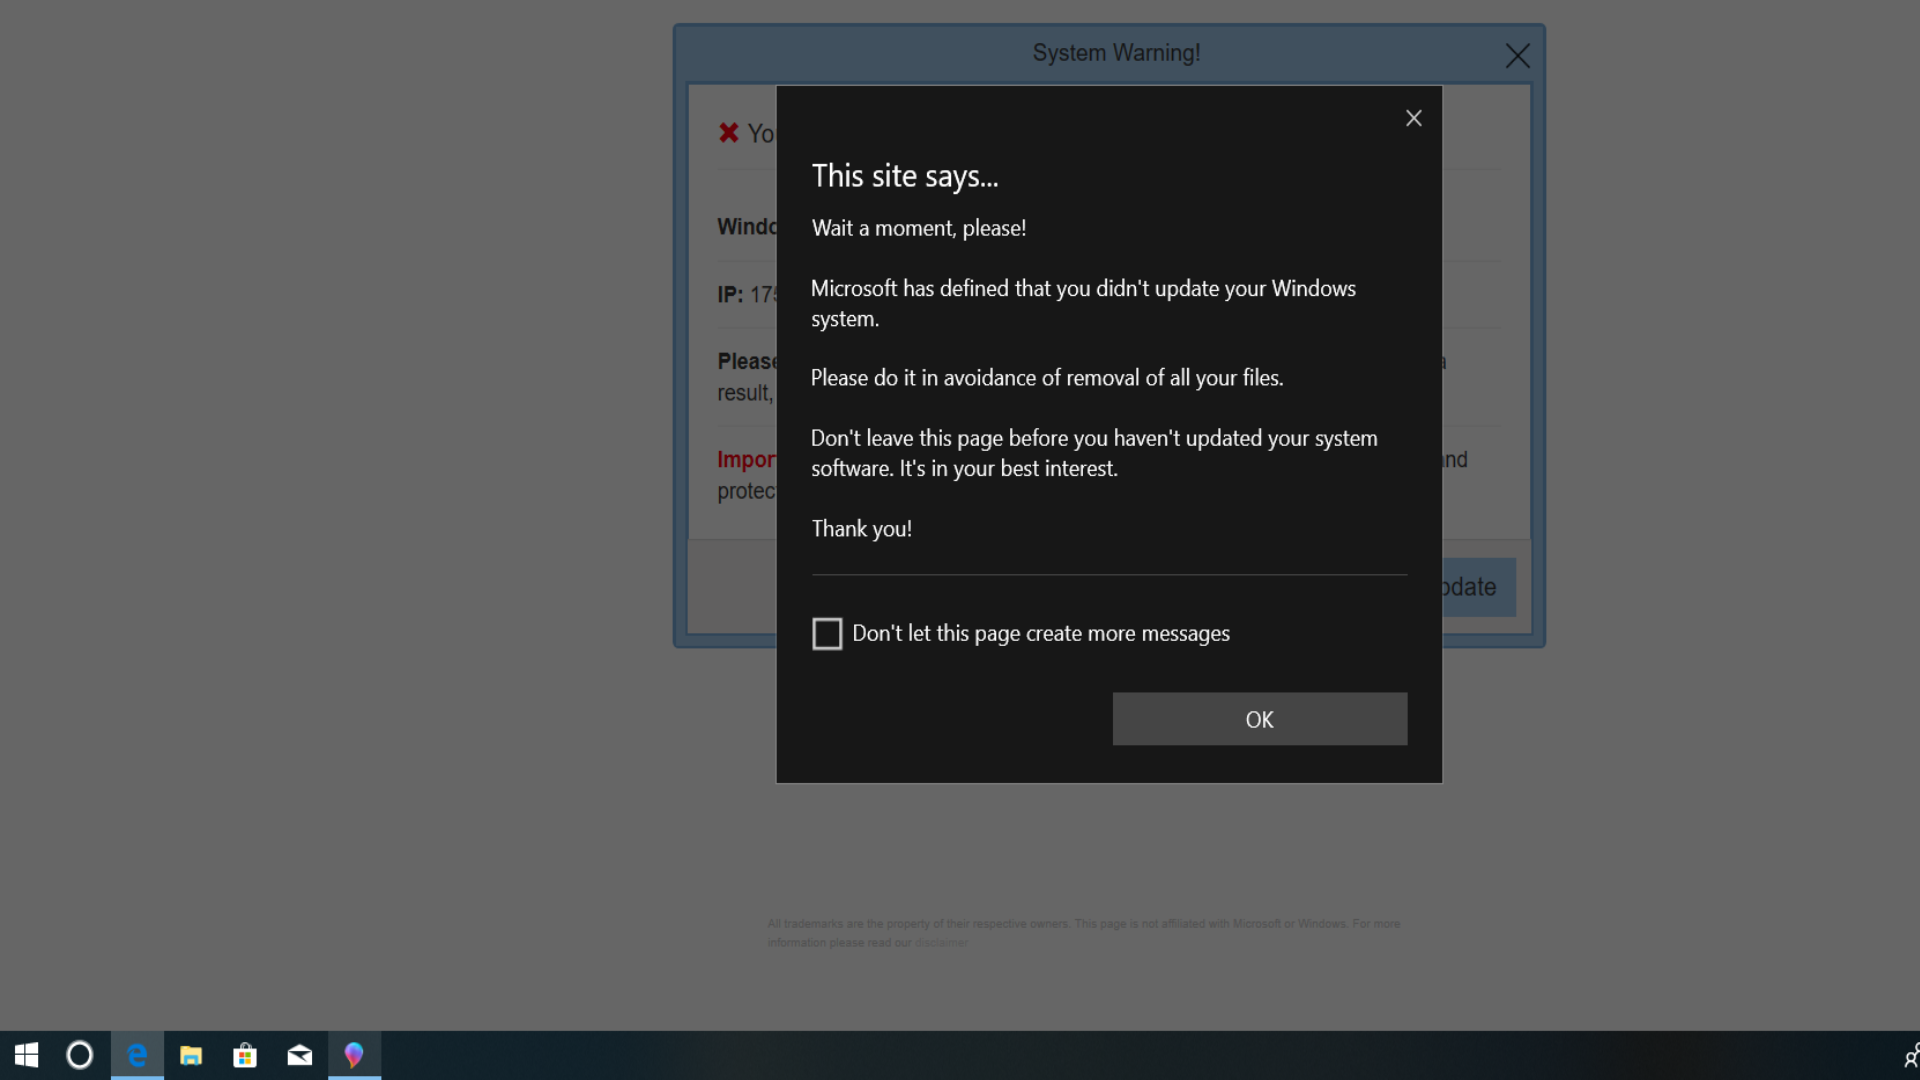 annoying pop up that attempts to freeze my pc and makes a buzzing noise b36e0da4-d75f-4004-a608-6c48fcb7a17e?upload=true.png